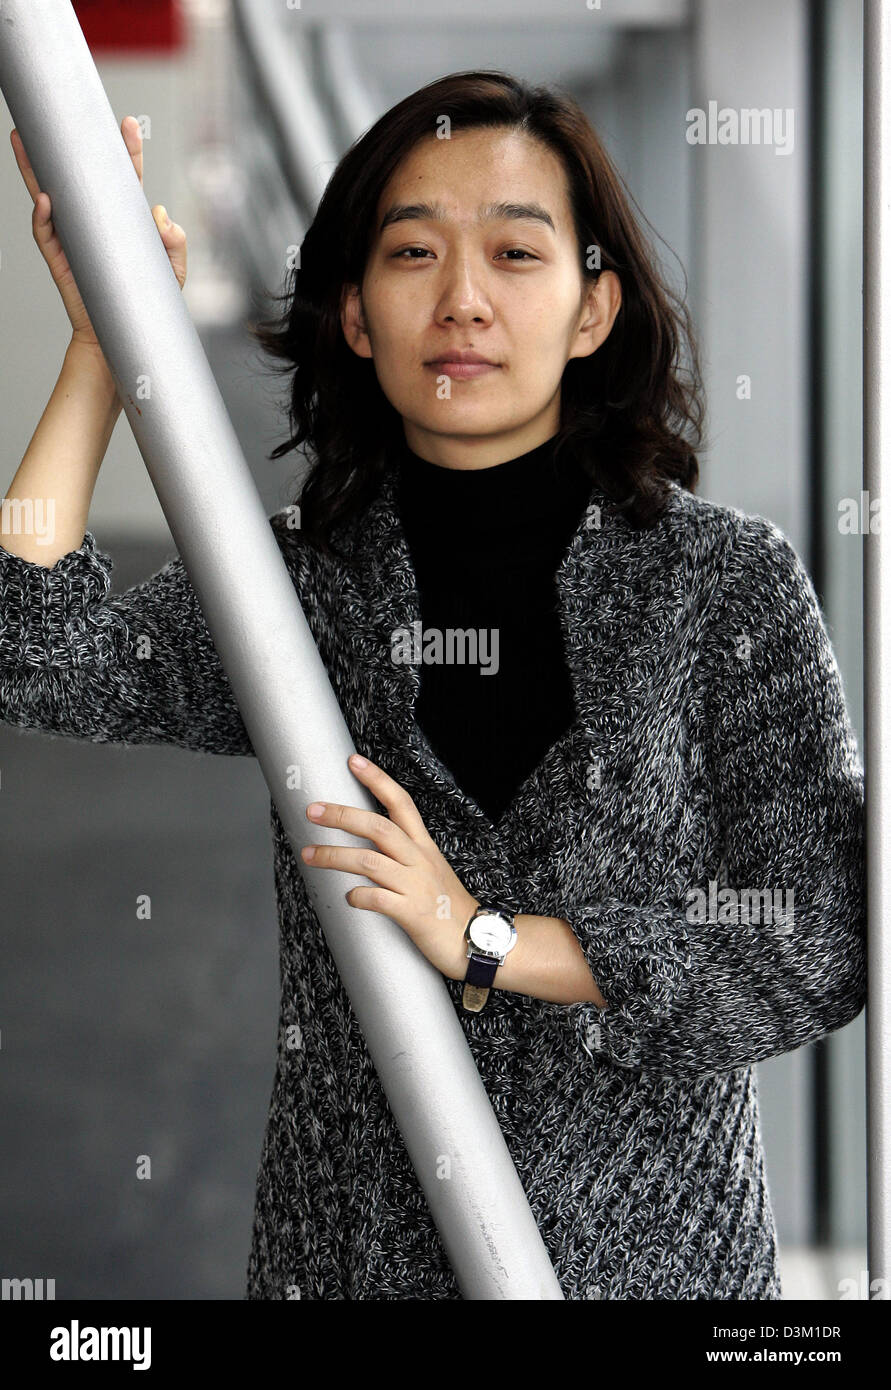 (dpa) -South Korean author Han Kang pictured at the Frankfurt Book Fair in Frankfurt, Germany, 19 October 2005. Photo: Frank May